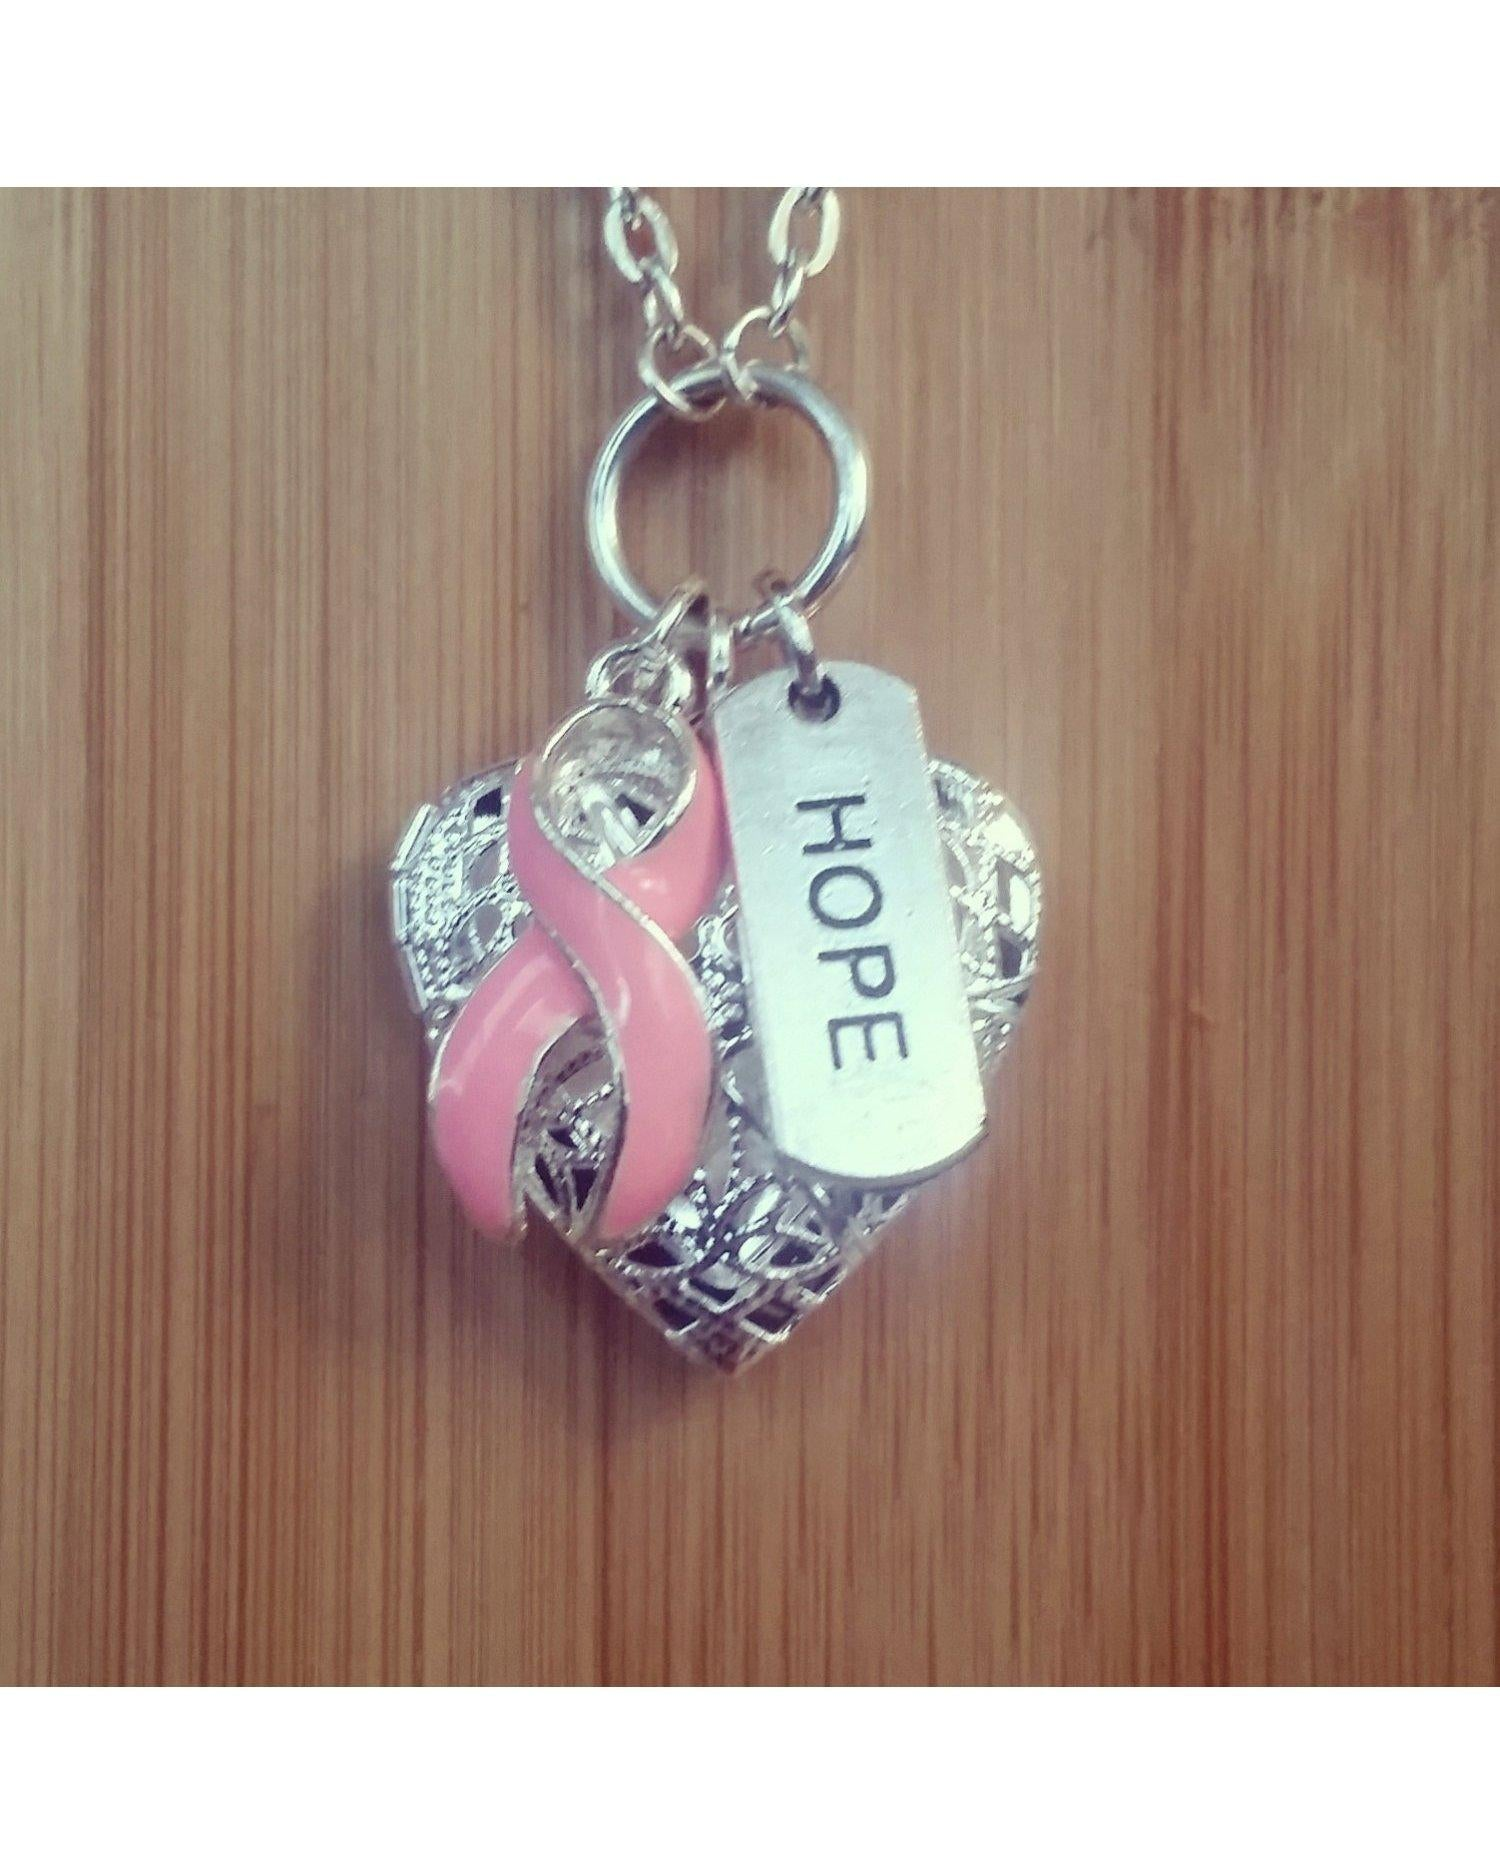 Pink Ribbon Breast Cancer Awareness Hope Inspired Silver Heart Locket Essential Oil Aromatherapy Diffuser Pendant Necklace C035 - Essentially Elegant